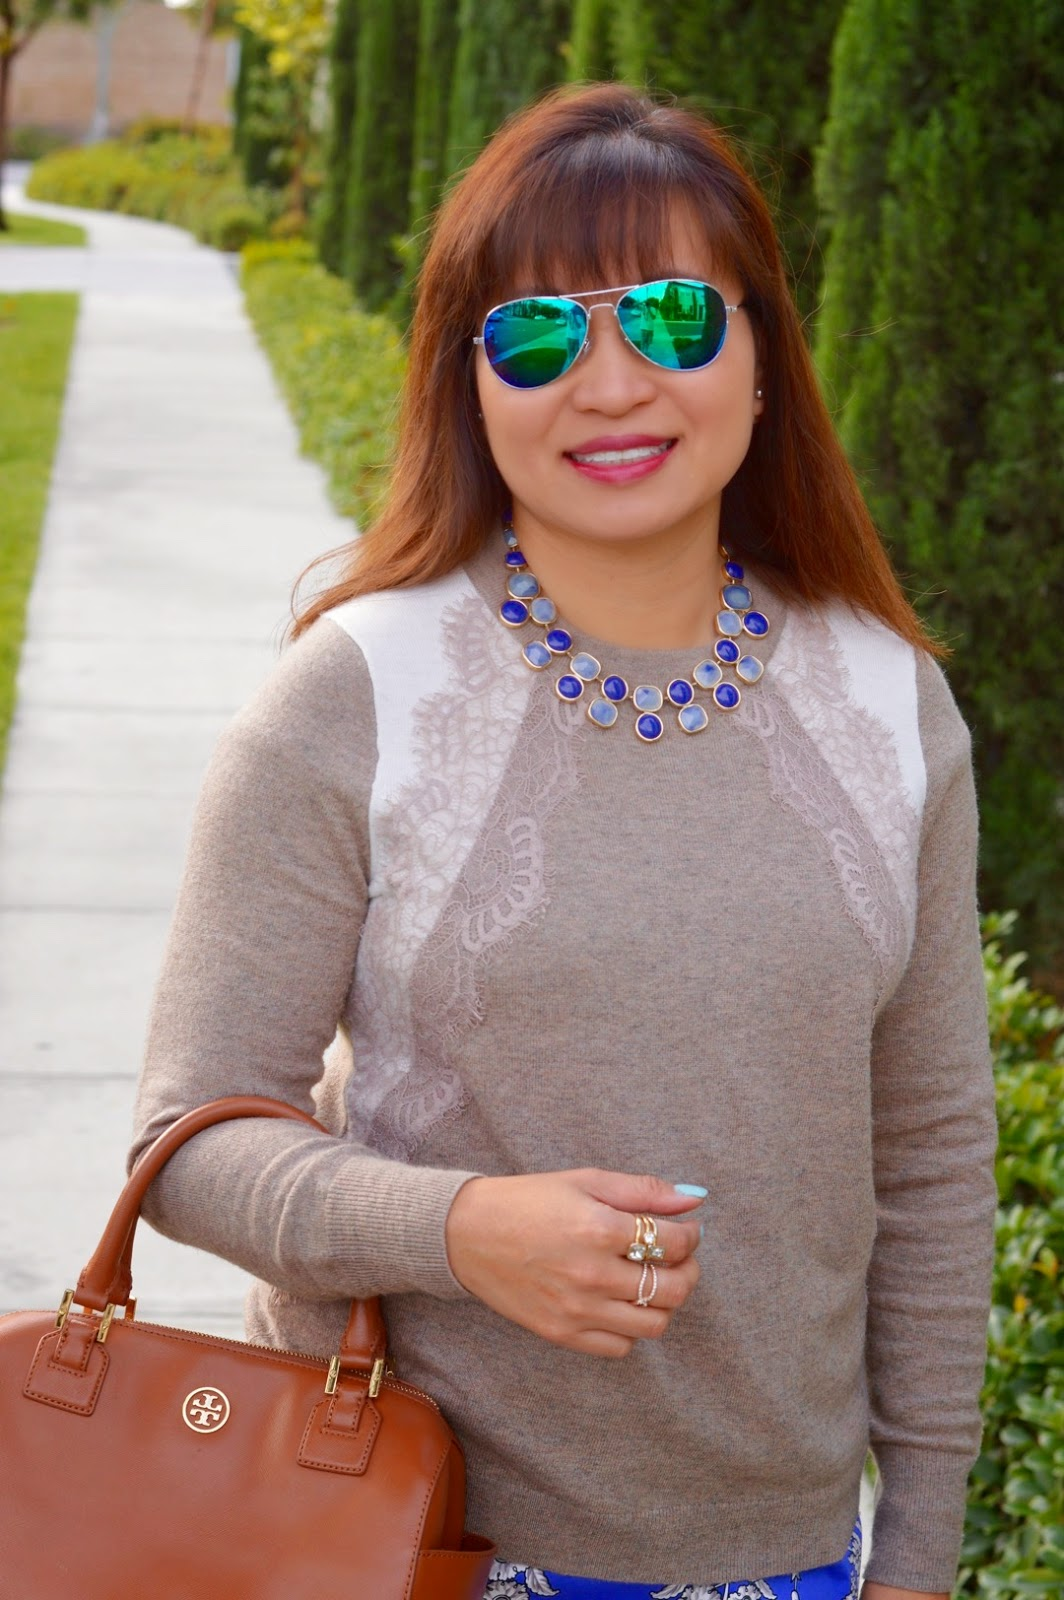 Fashion over 40, OC blogger